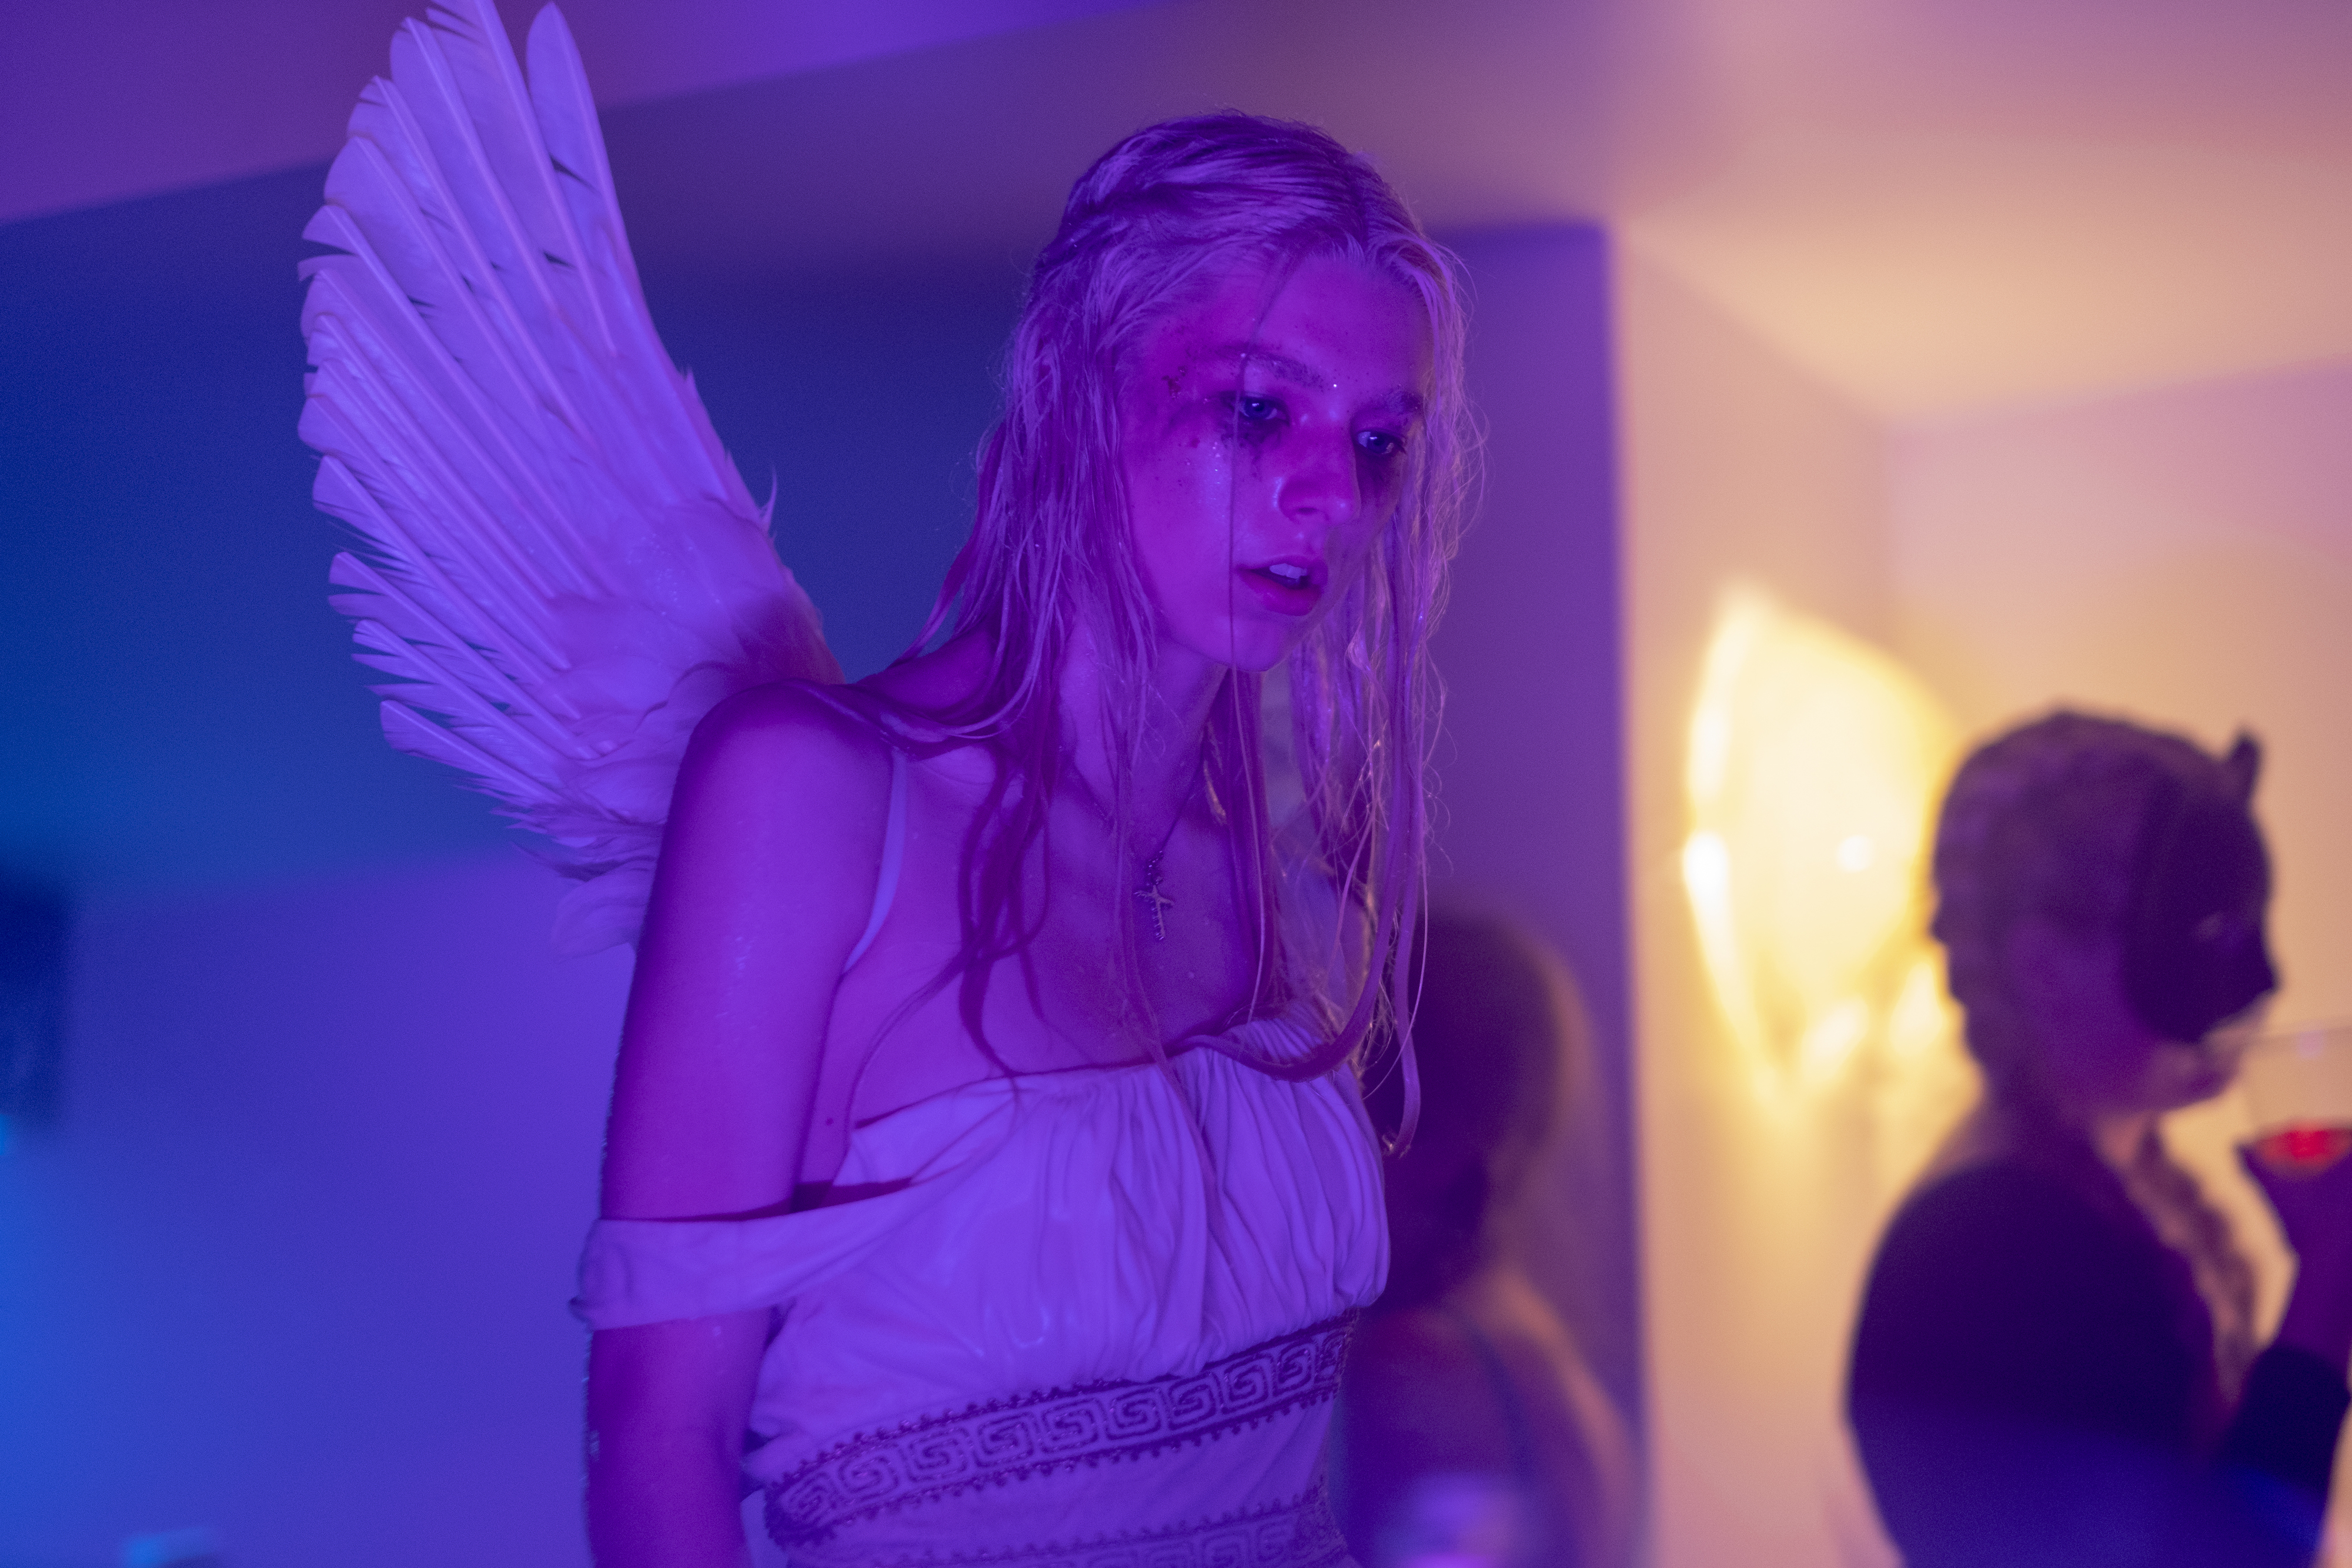 """A photo of Jules from """"Euphoria."""" Jules is crying, her eye makeup smeared, and wearing an angel costume."""